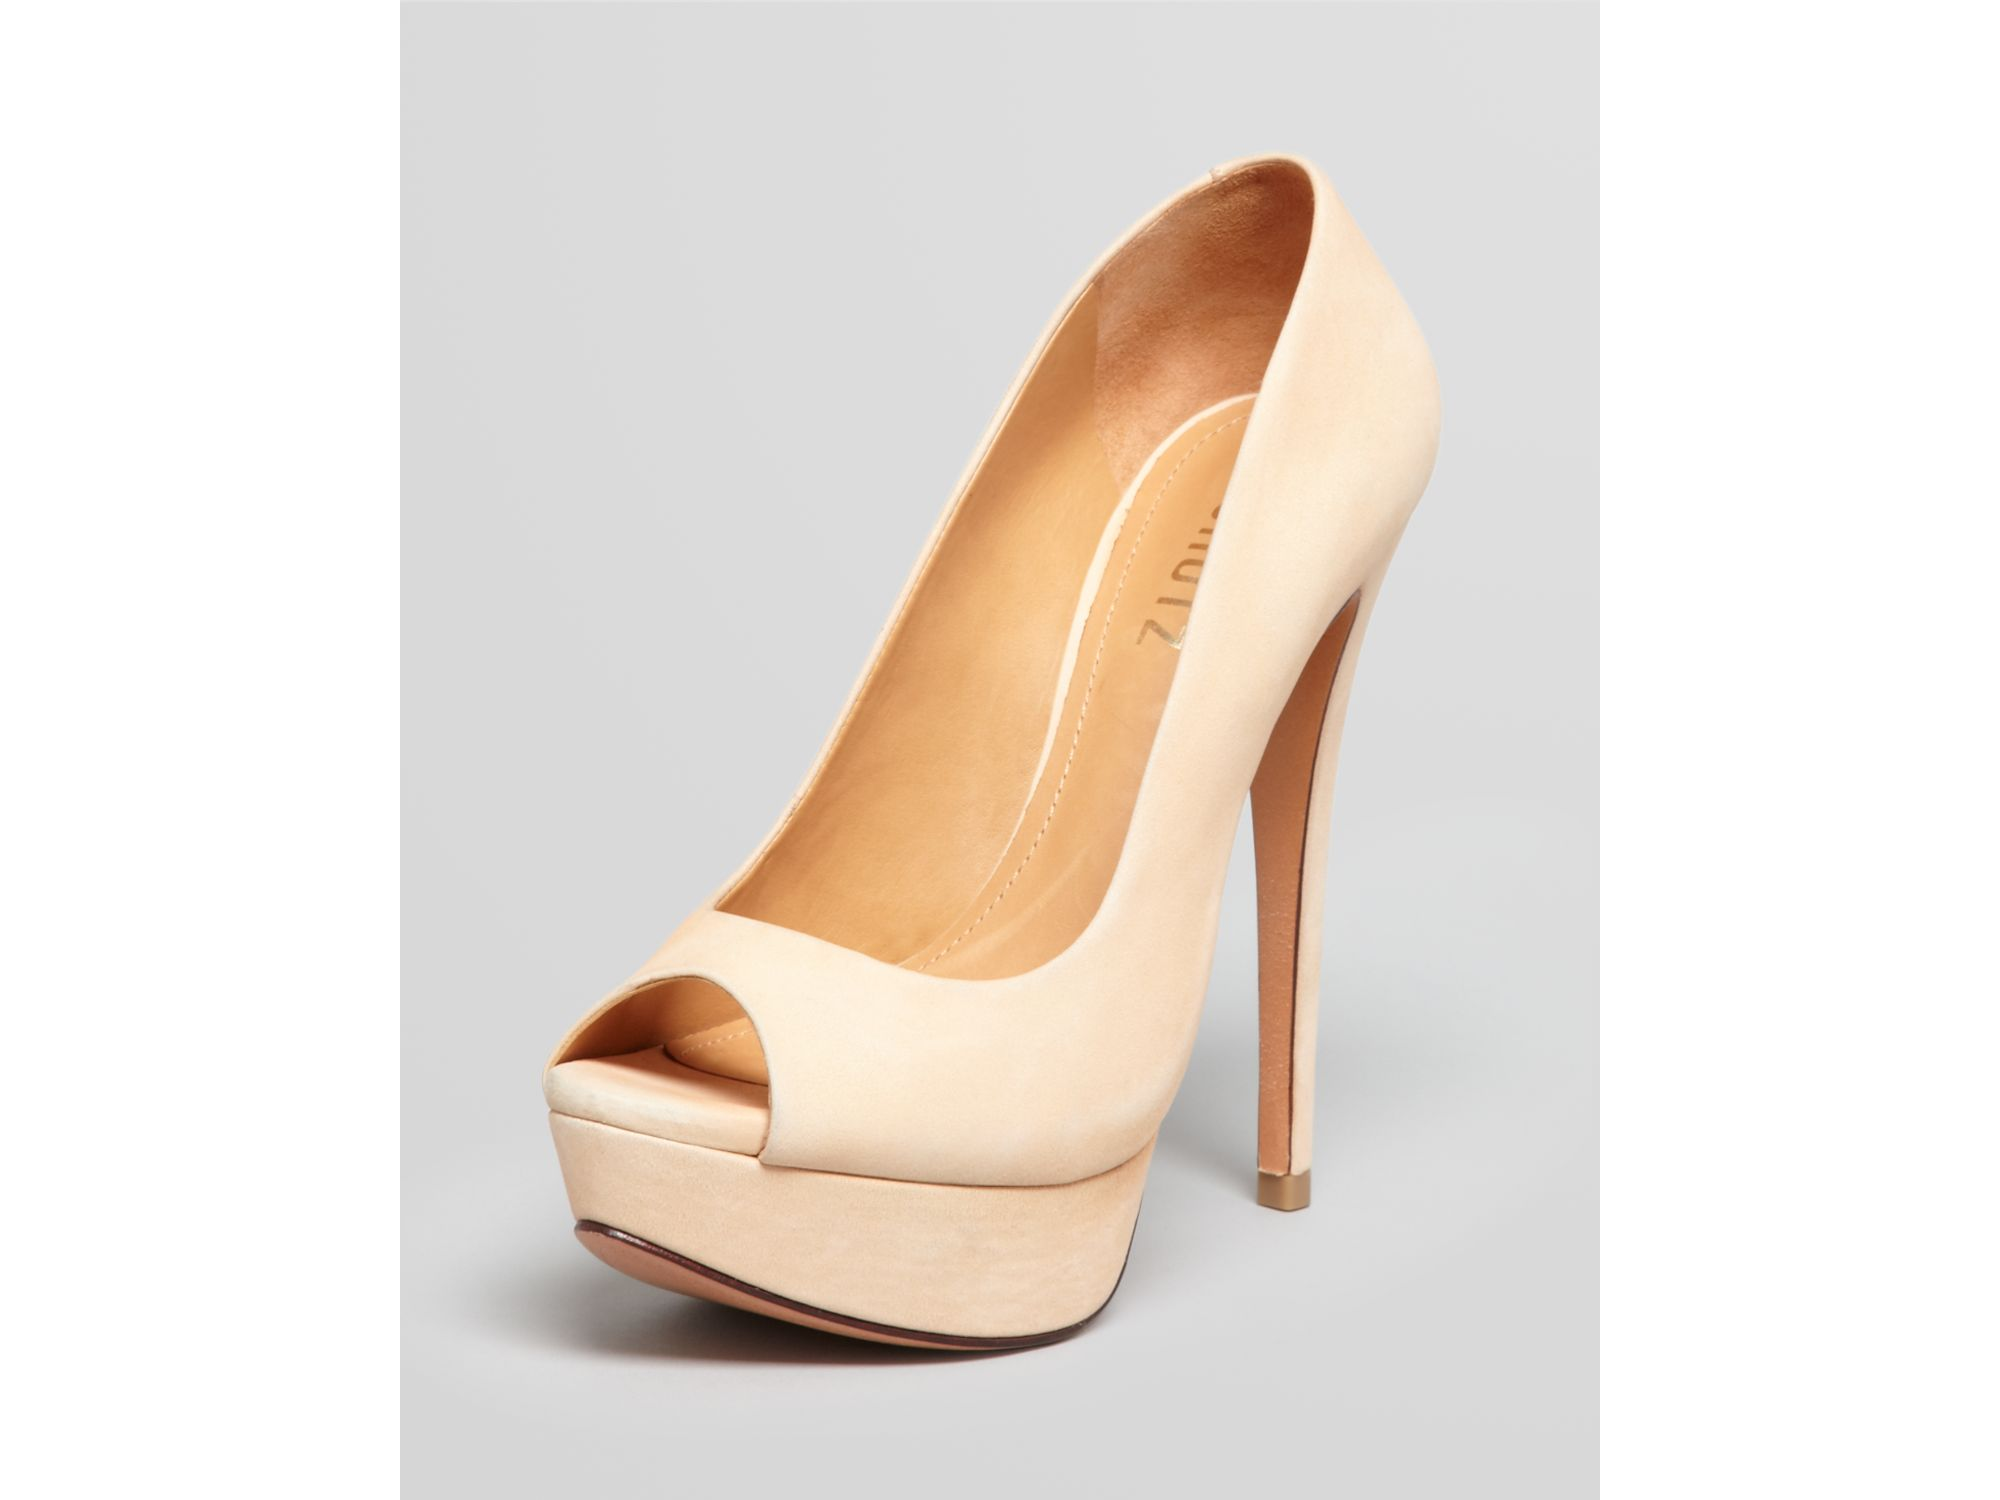 clearance pre order cheap sale 2014 unisex Schutz pointed toe pumps free shipping wide range of free shipping 2014 where to buy IBu6t9W49